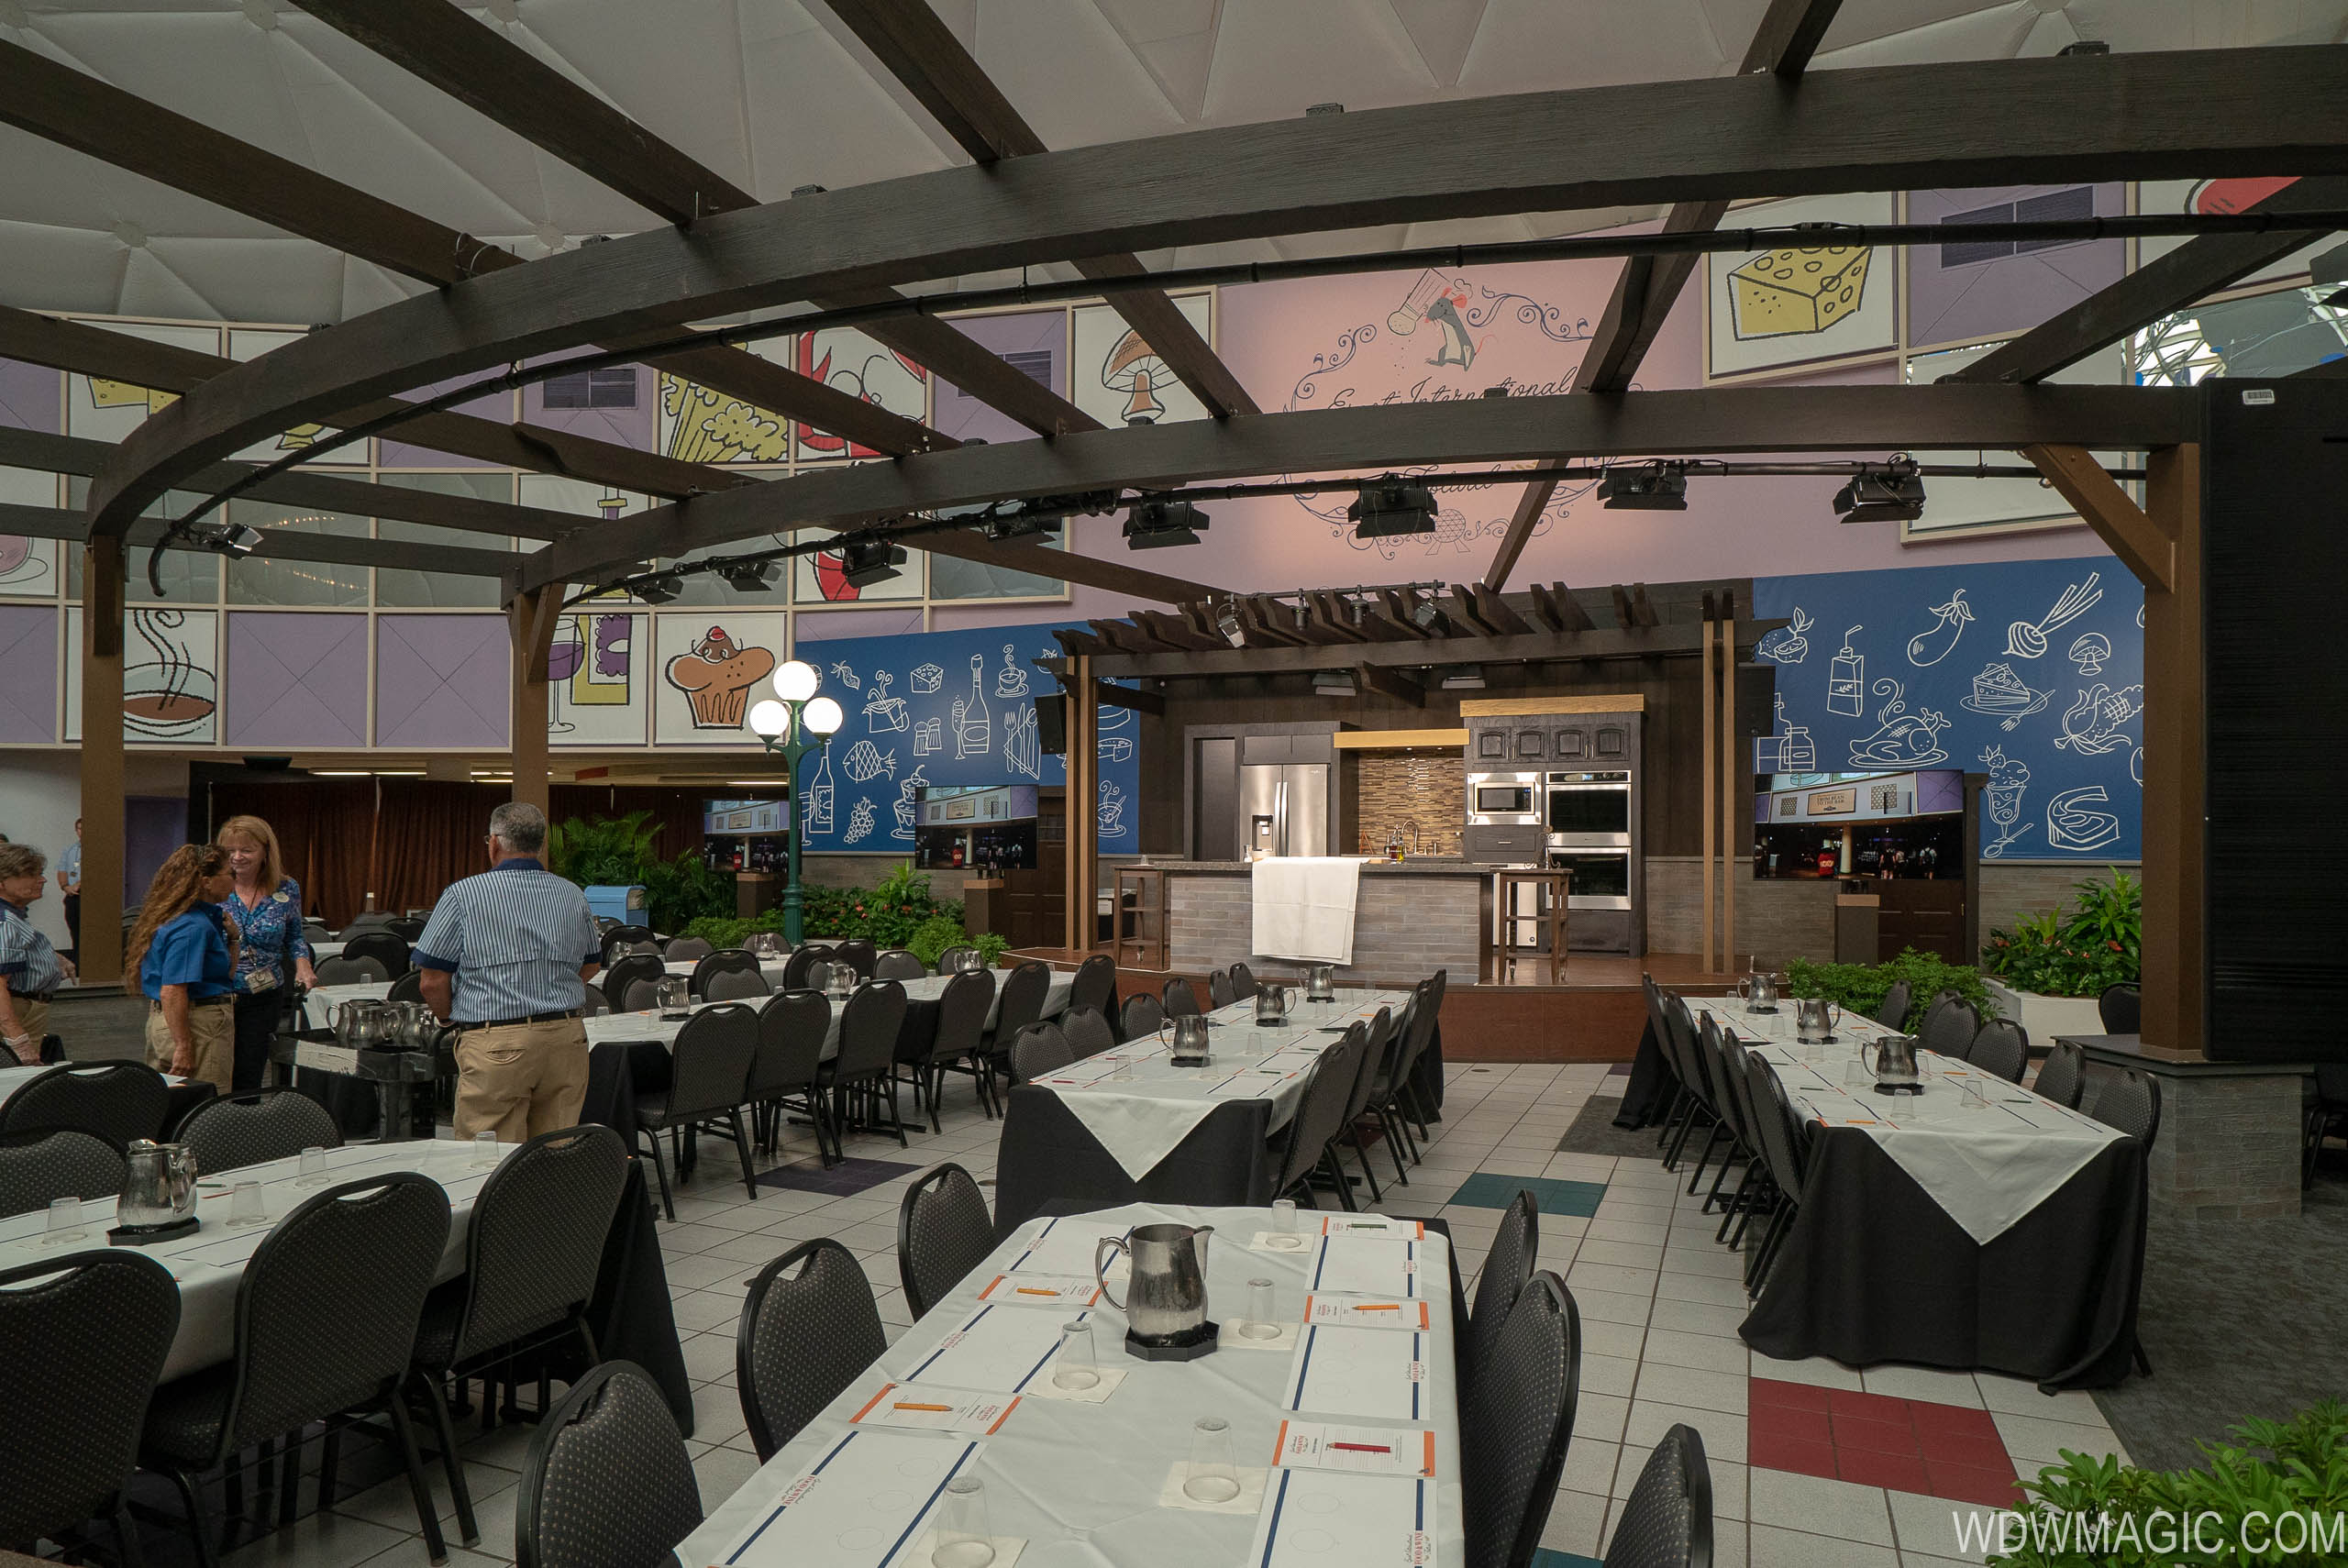 Culinary Stage for cooking demonstrations at Epcot International Food and Wine Festival